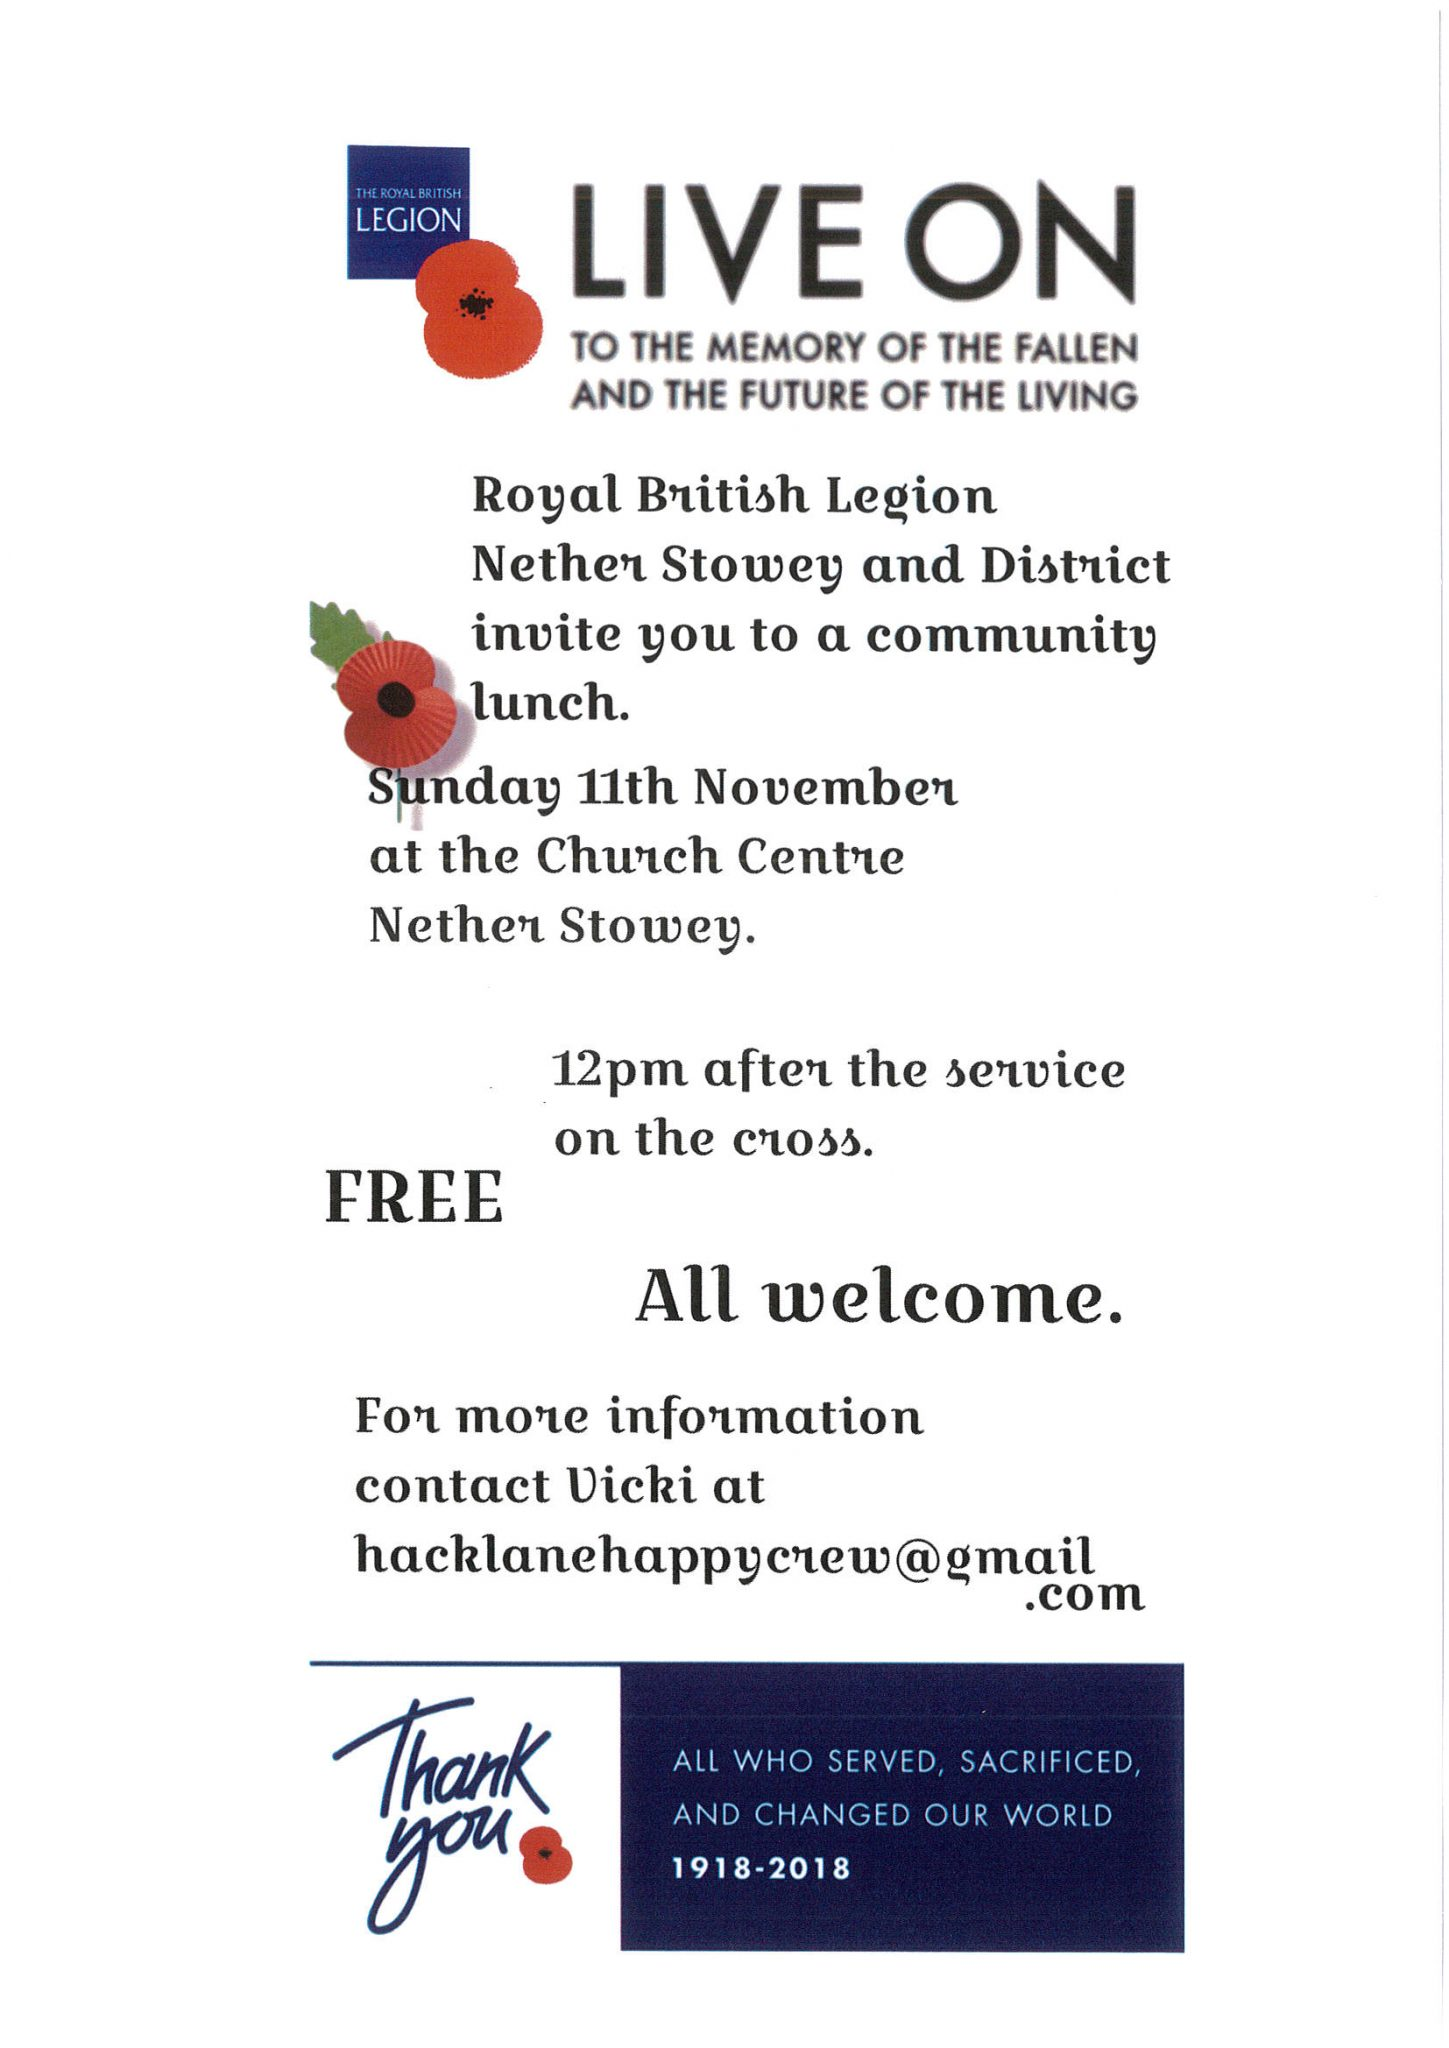 Royal British Legion Nether Stowey and District community Lunch @ St Mary's Church Centre | Nether Stowey | England | United Kingdom